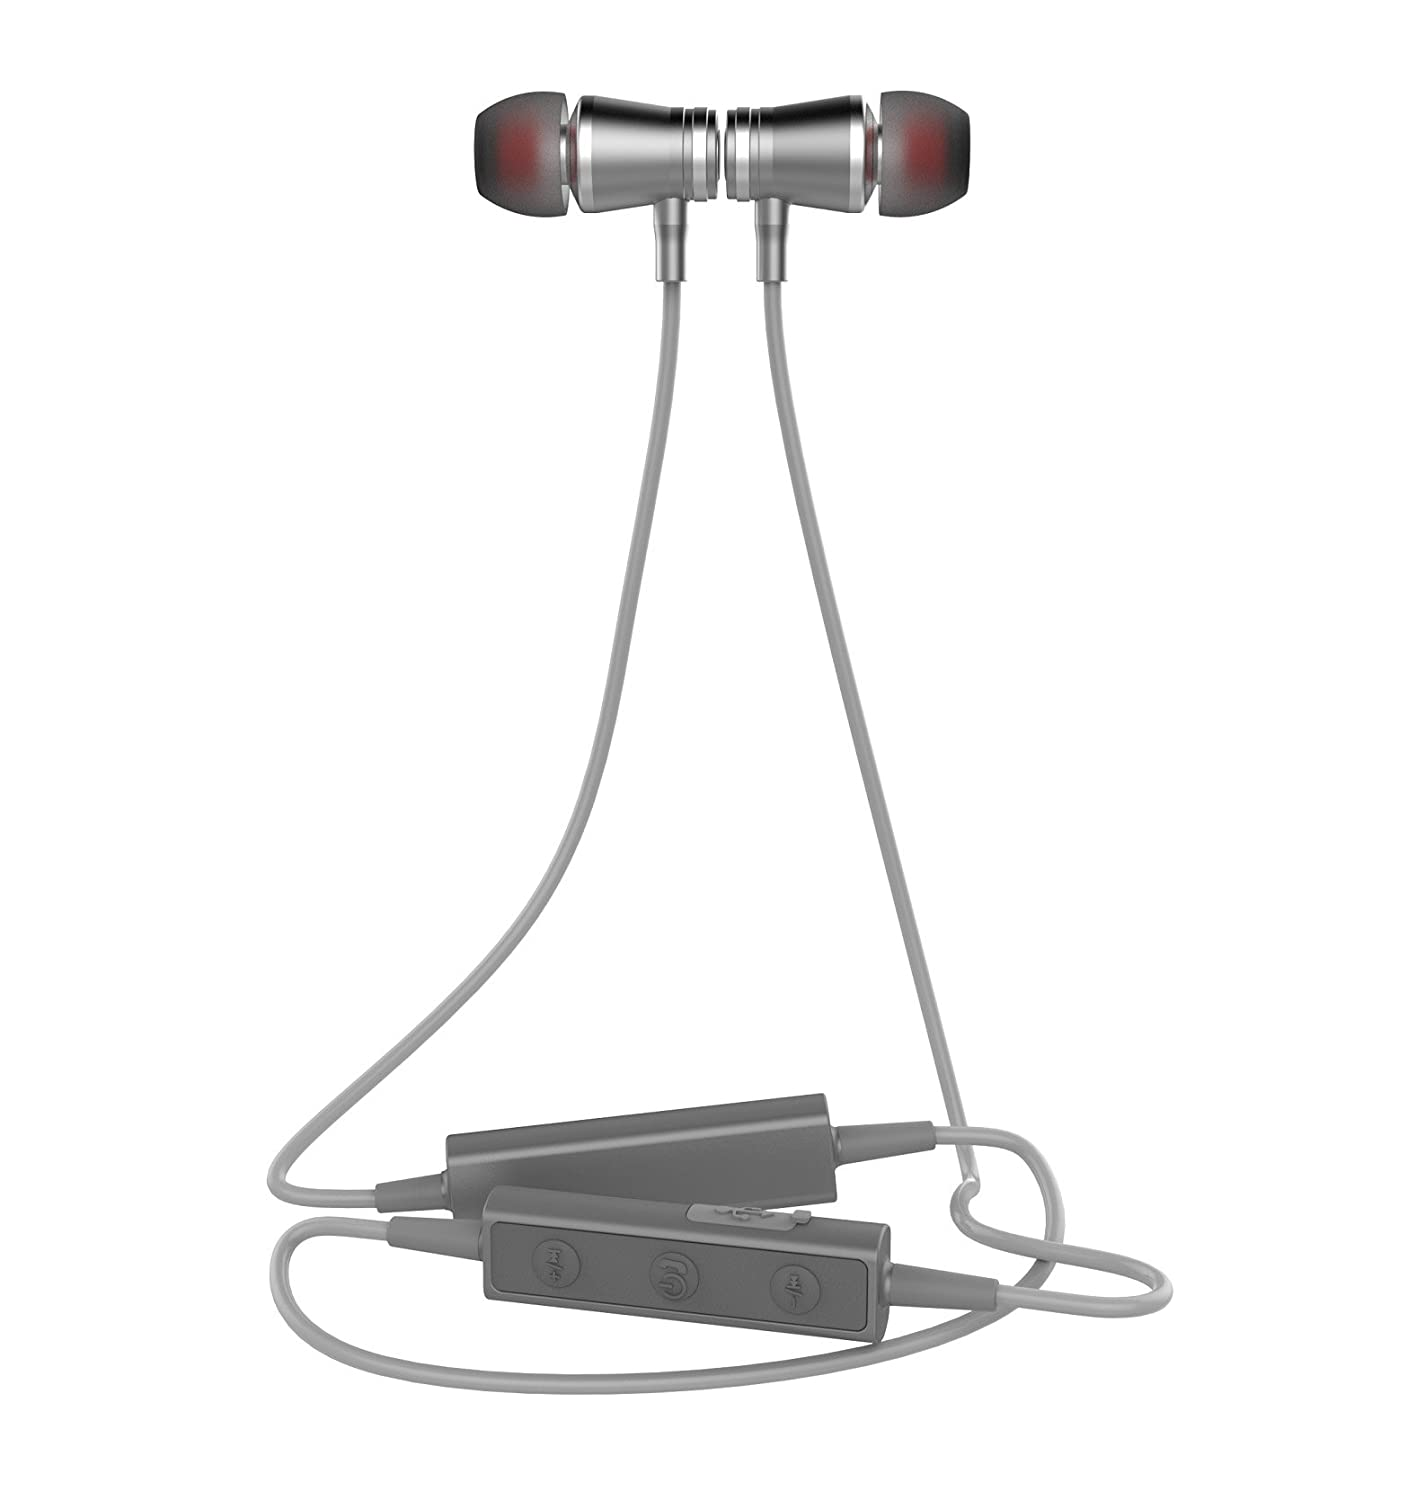 Amazon.com: BlueBee Auriculares Bluetooth magnéticos: Cell Phones & Accessories